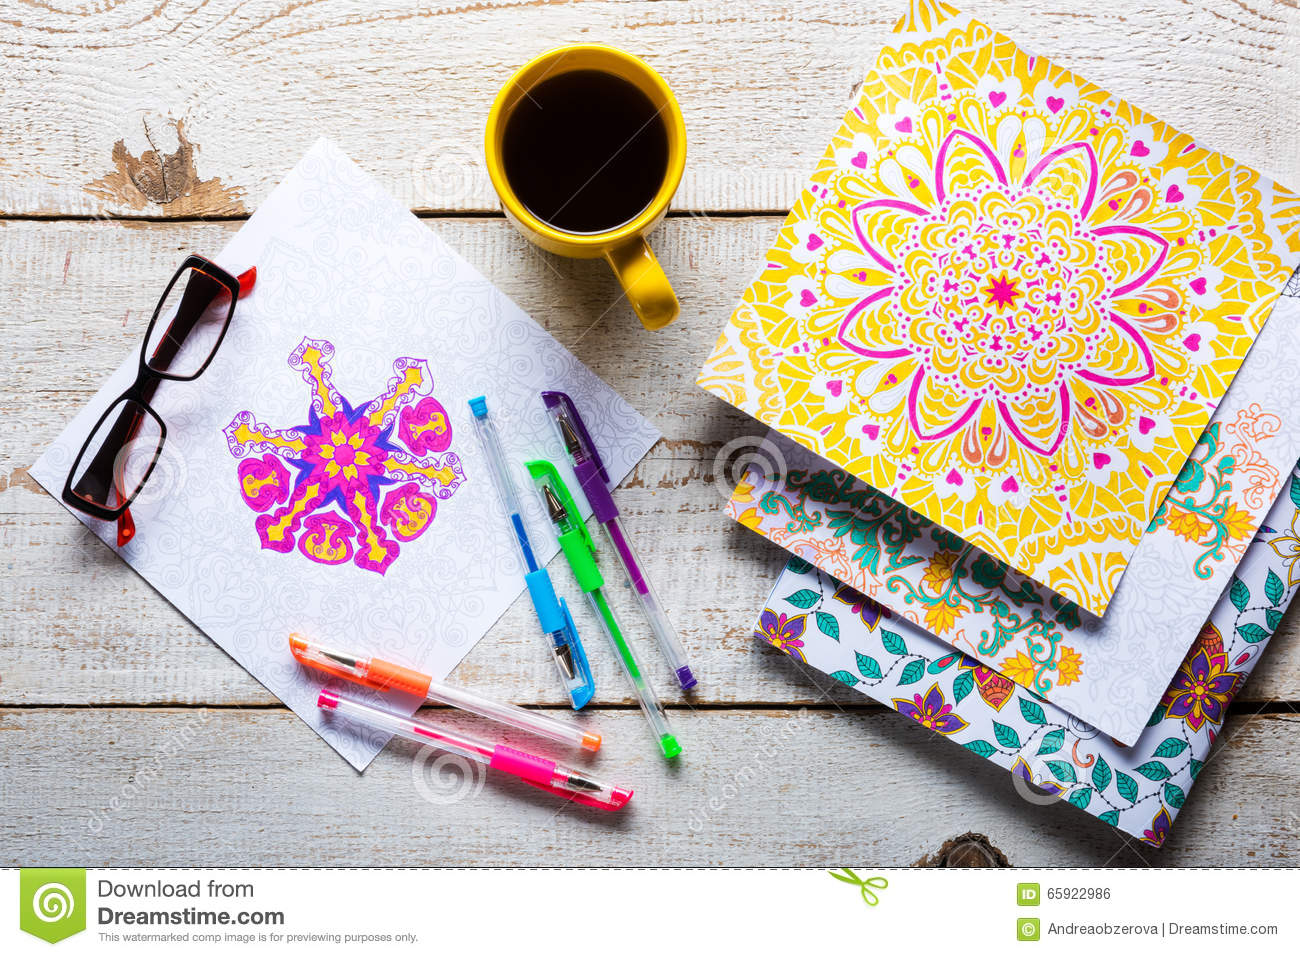 Download Adult Coloring Books New Stress Relieving Trend Stock Photo